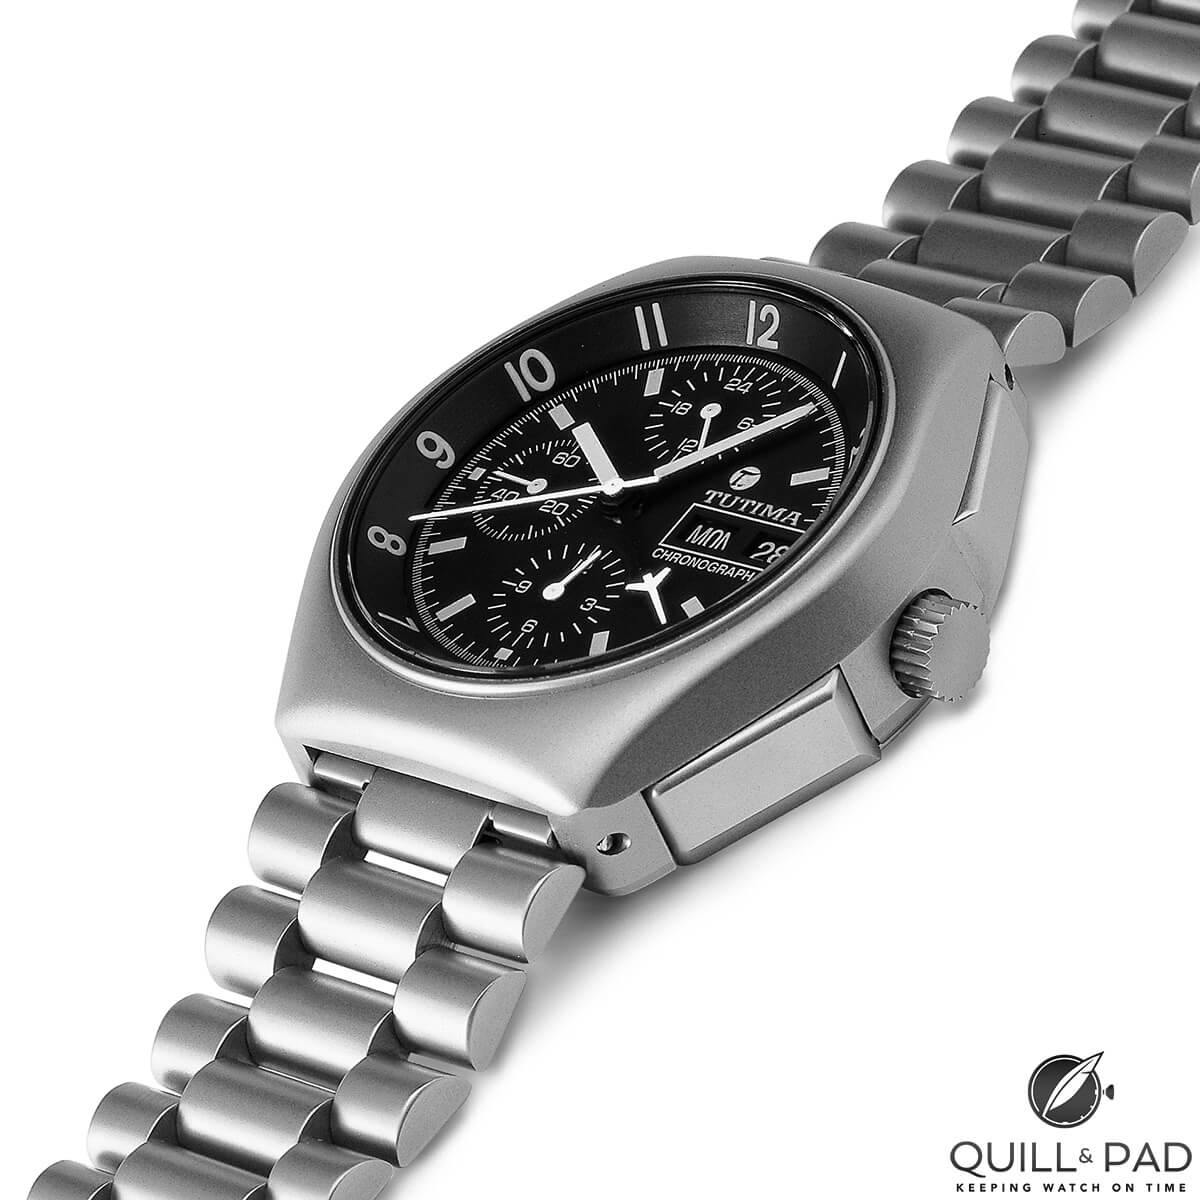 Tutima Reference 798-02 Military Chronograph